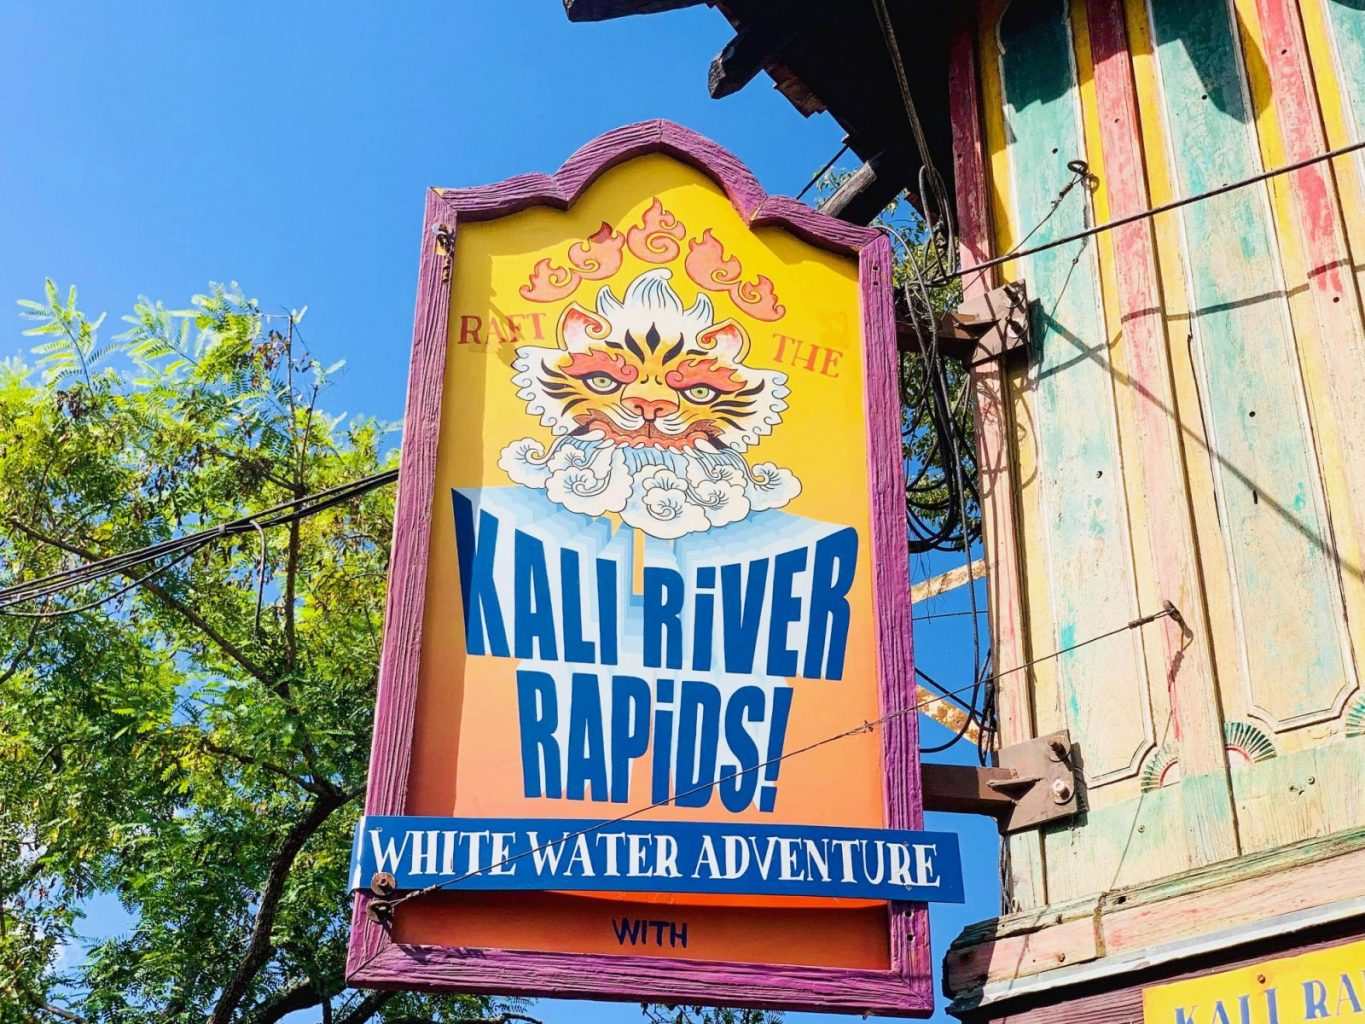 bright yellow, orange, and blue sign with Tiger for Kali River Rapids Animal Kingdom rides